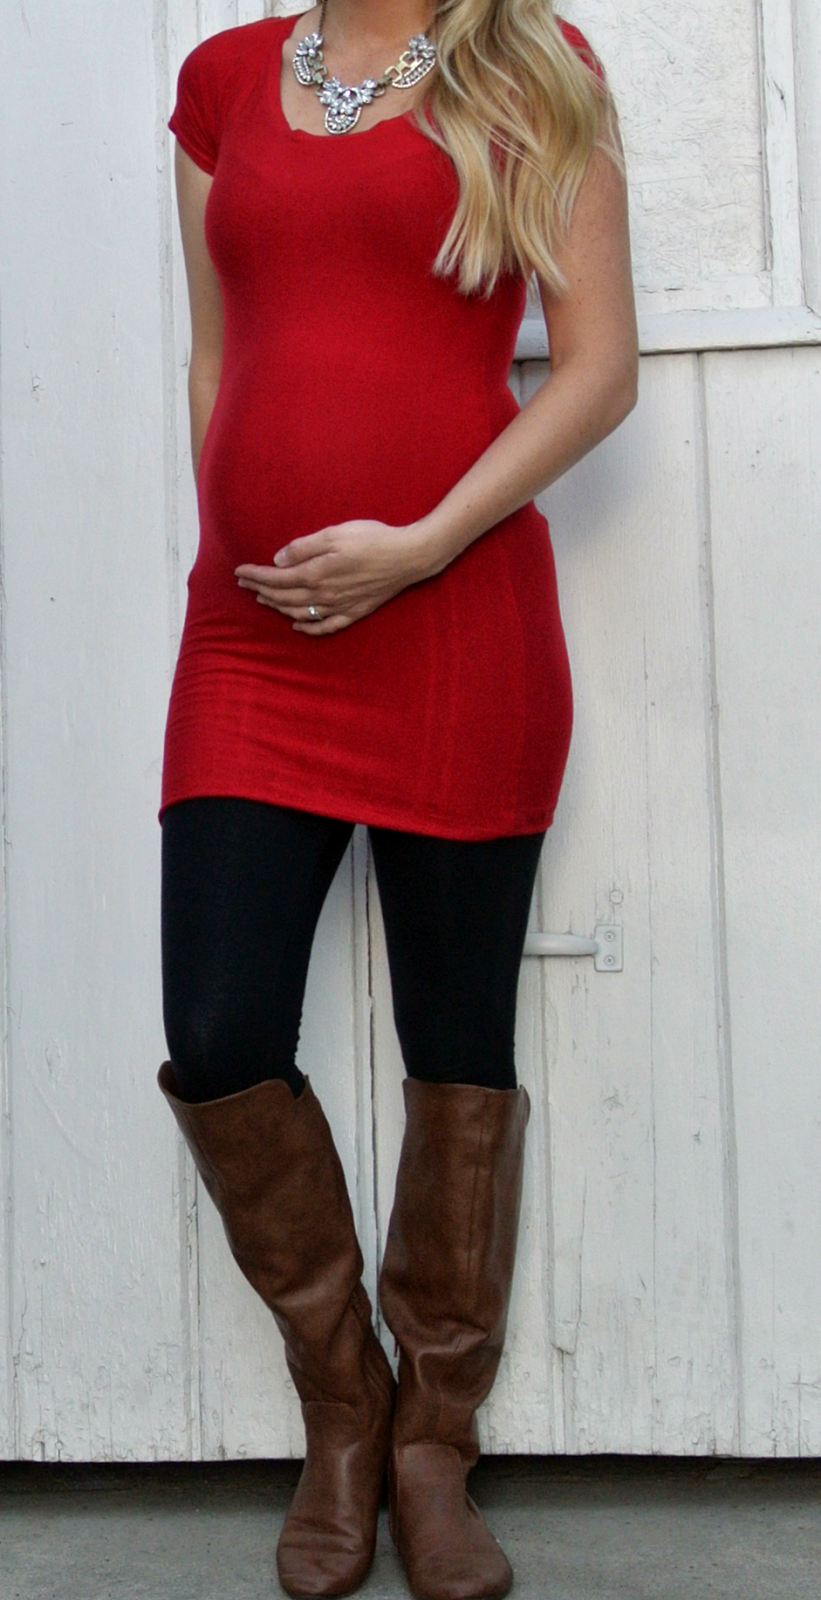 Cute maternity top